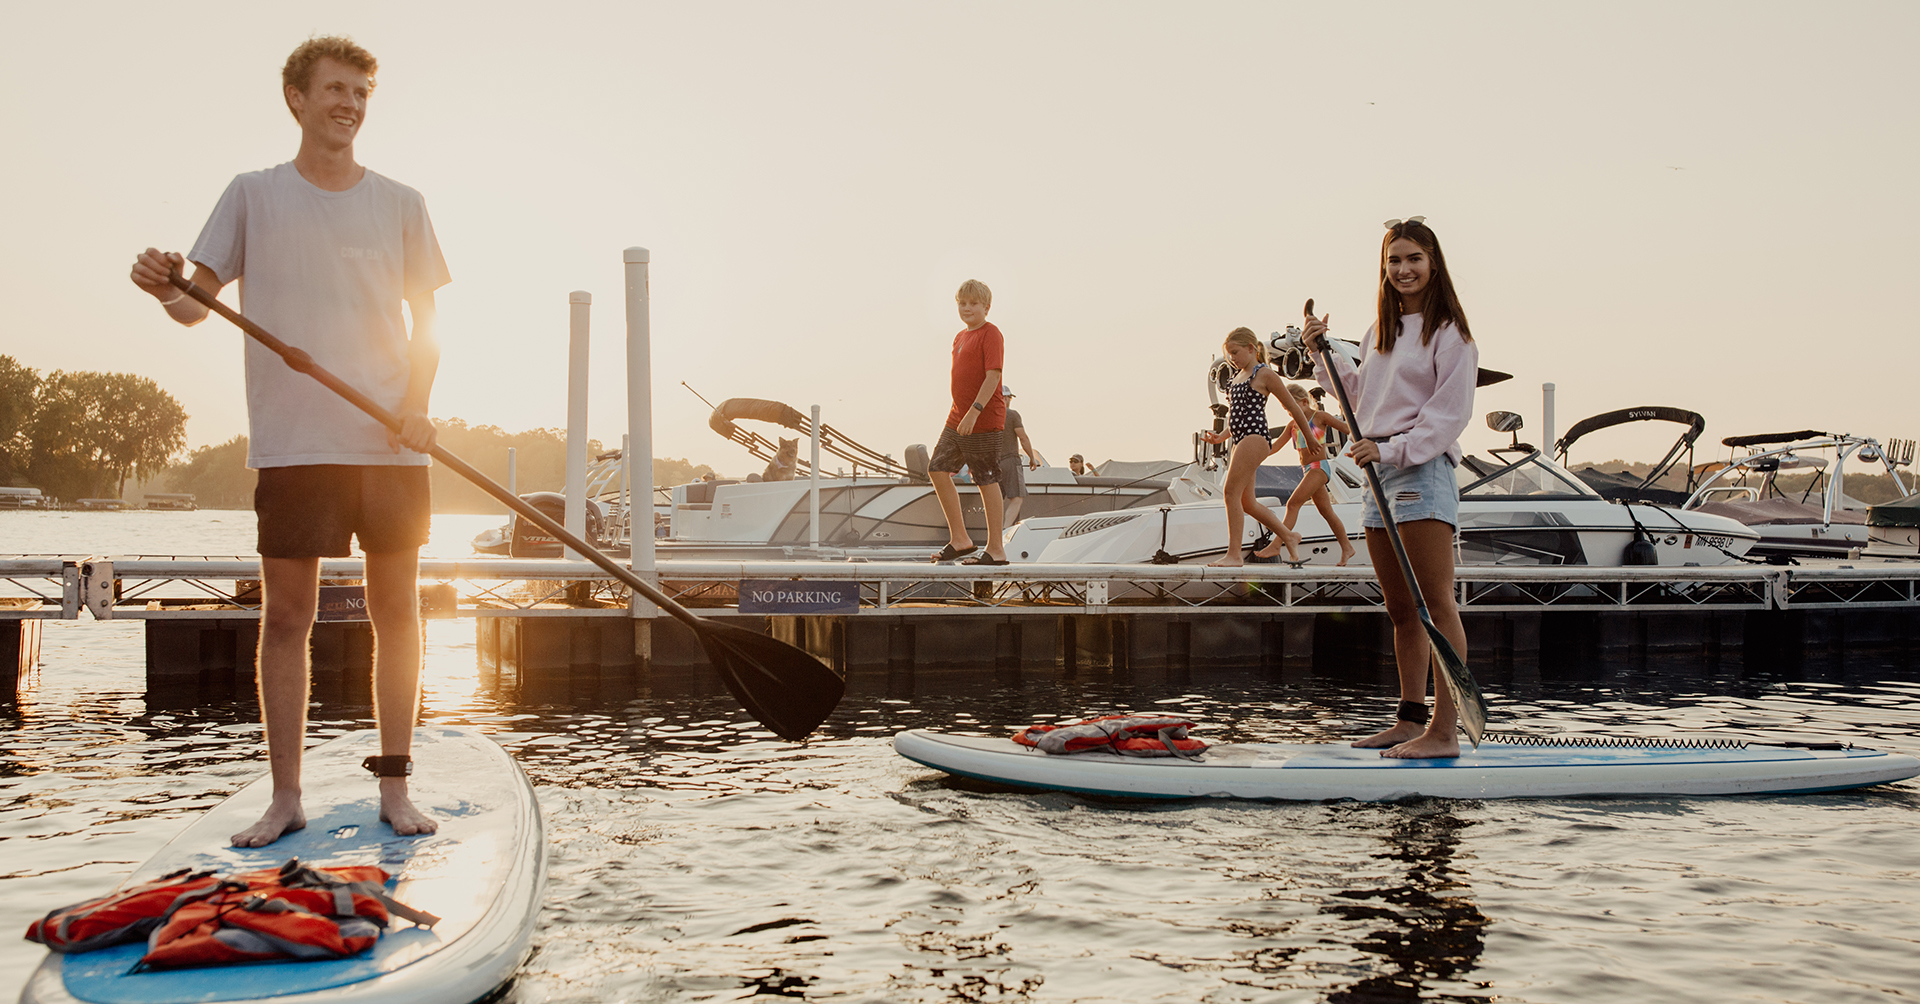 Paddle boarding on the lake by a Porta-Dock dock